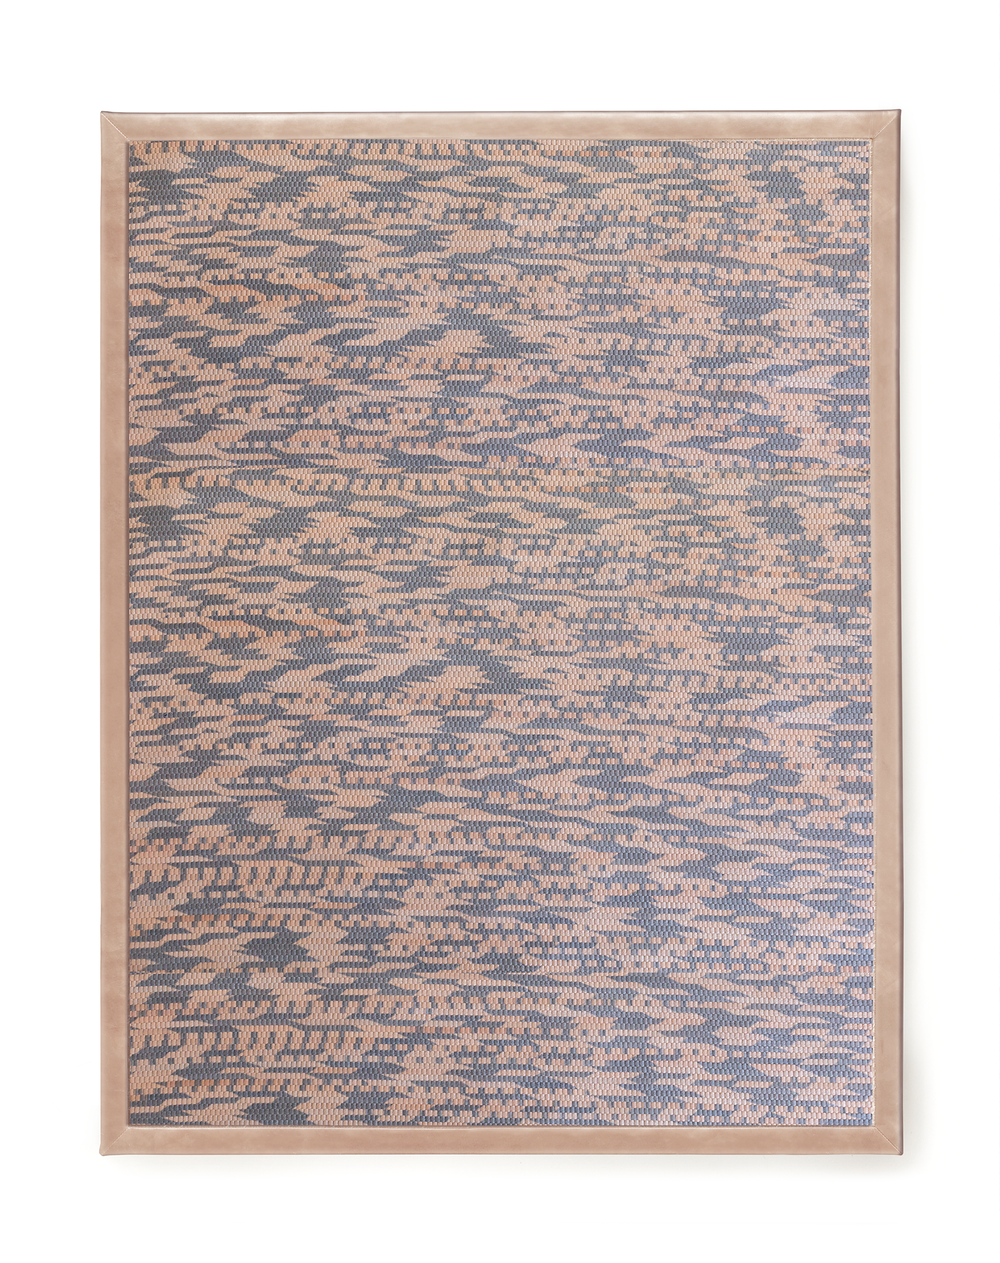 AVO_Woven-Leather-Rug_Bound-Edge_Fragments.png